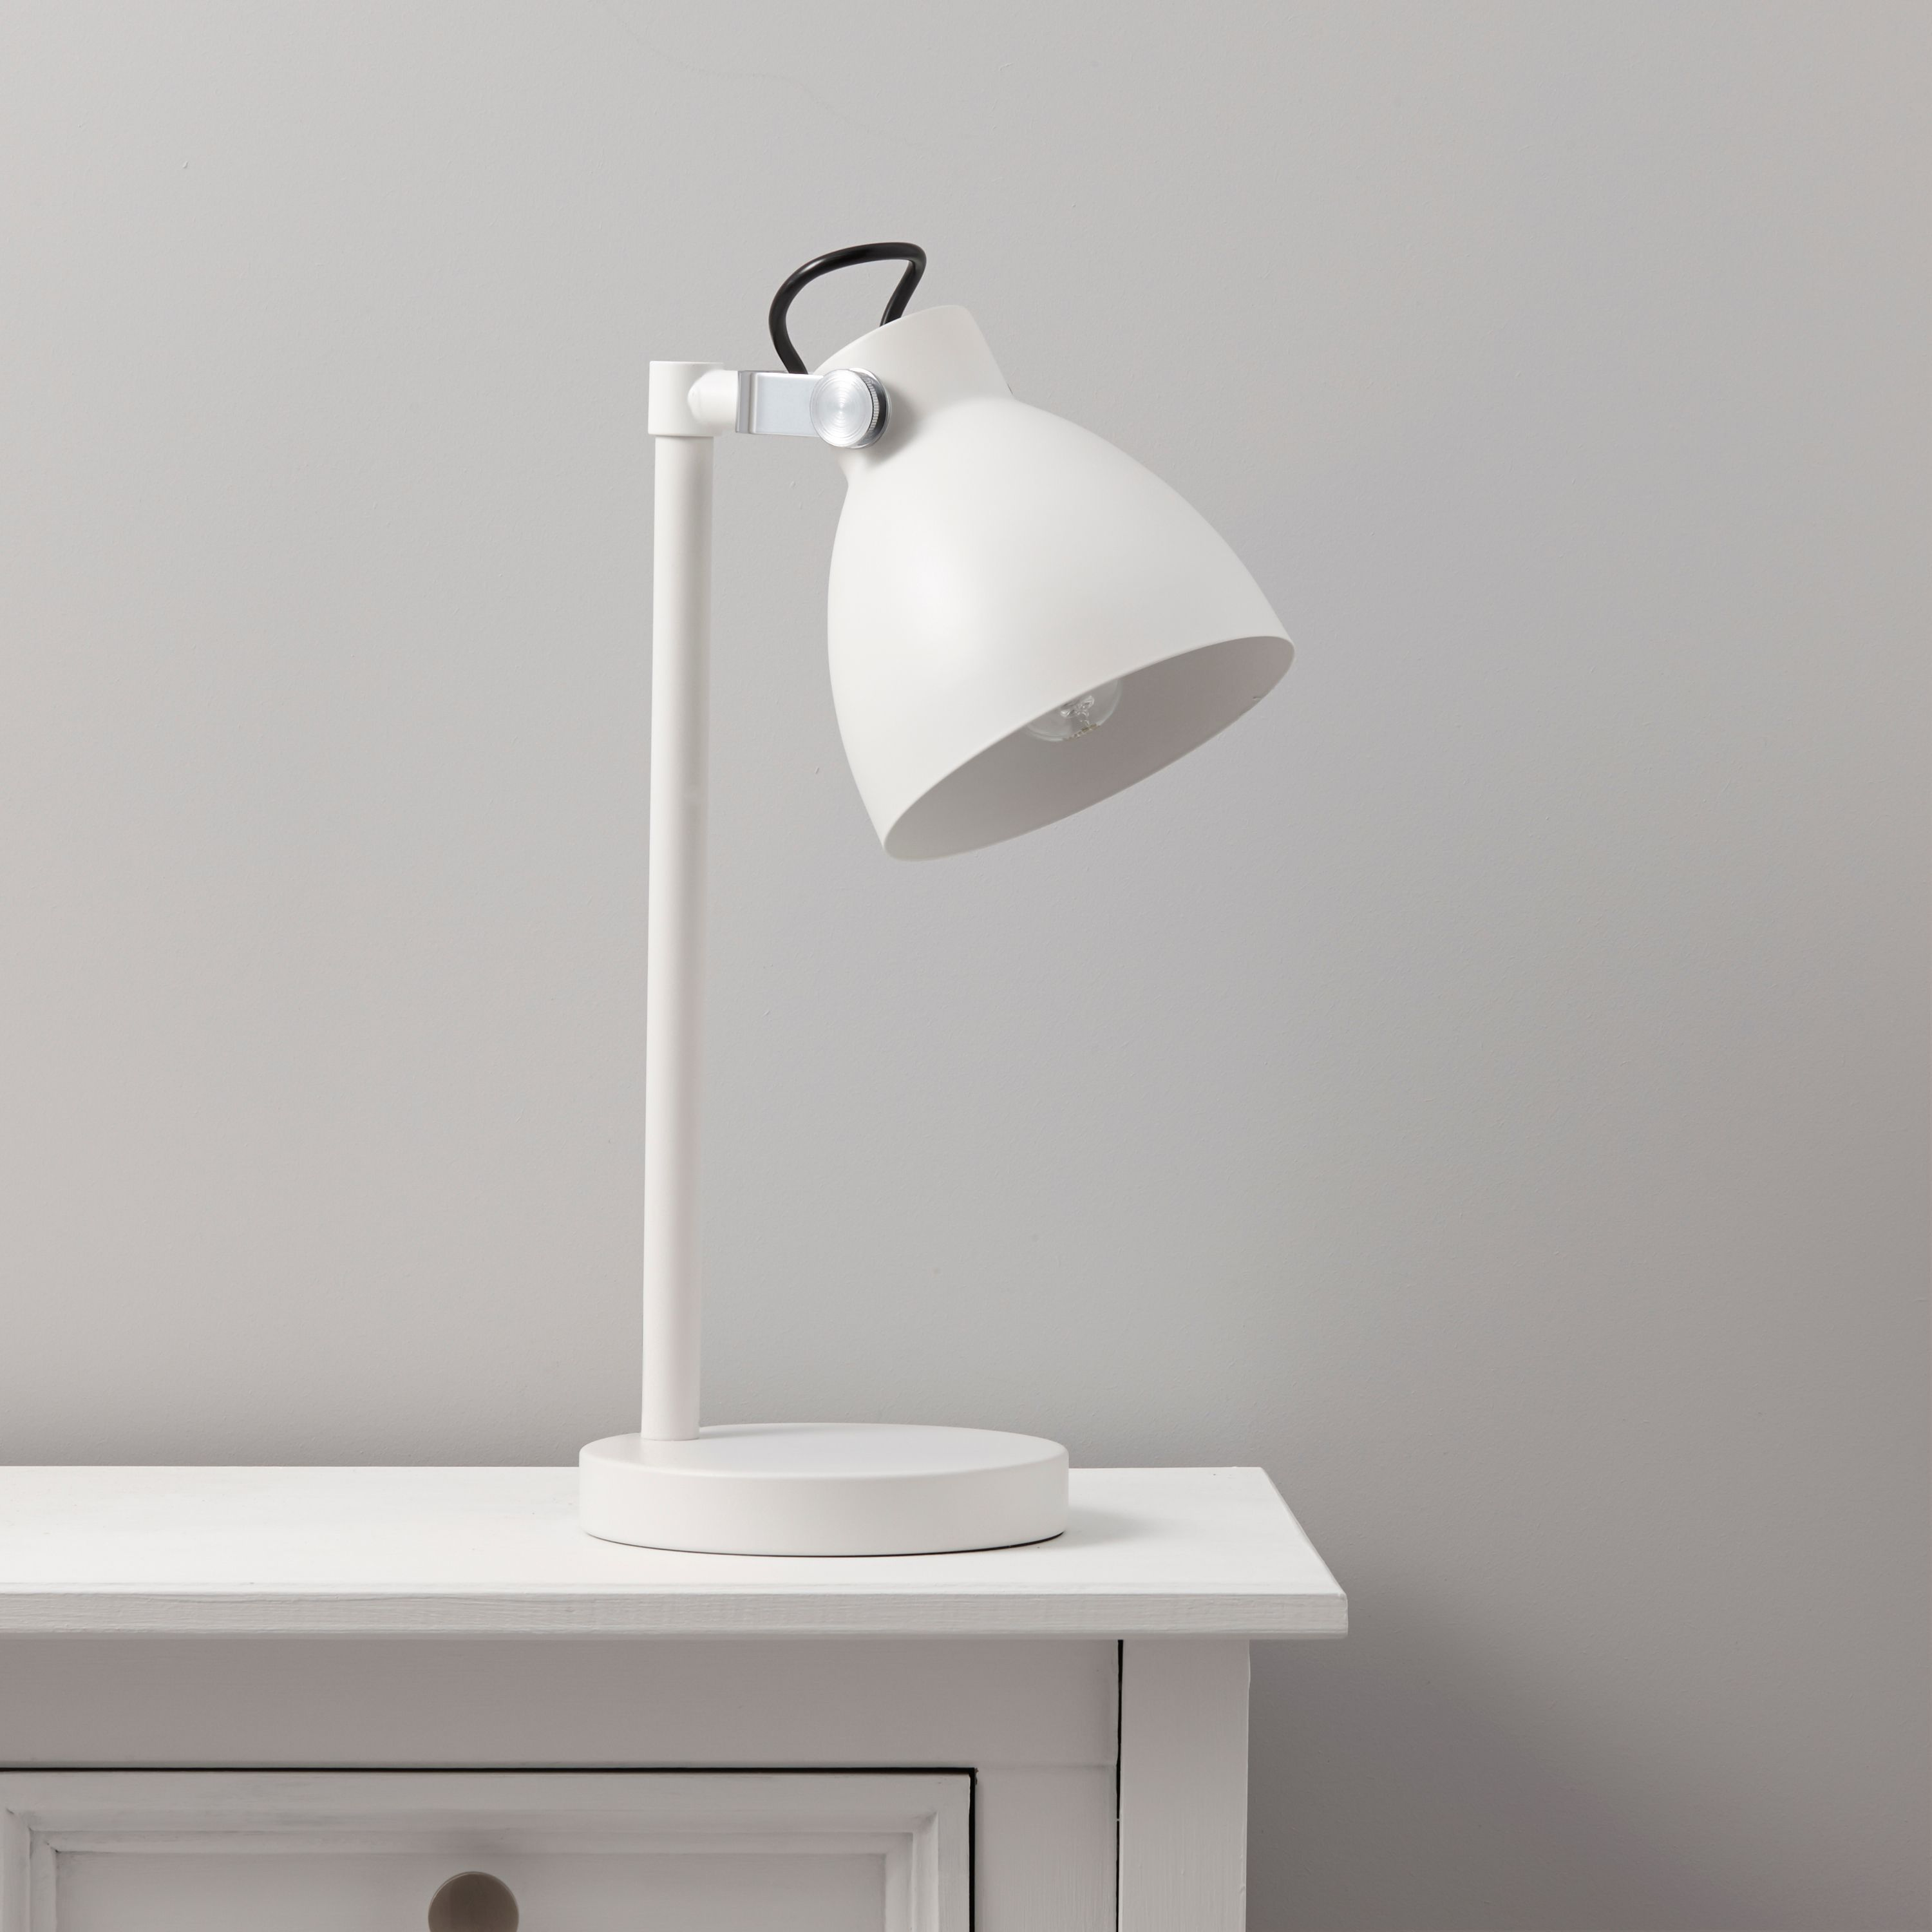 Tibbon White Table Lamp notavailable DIY at B&Q